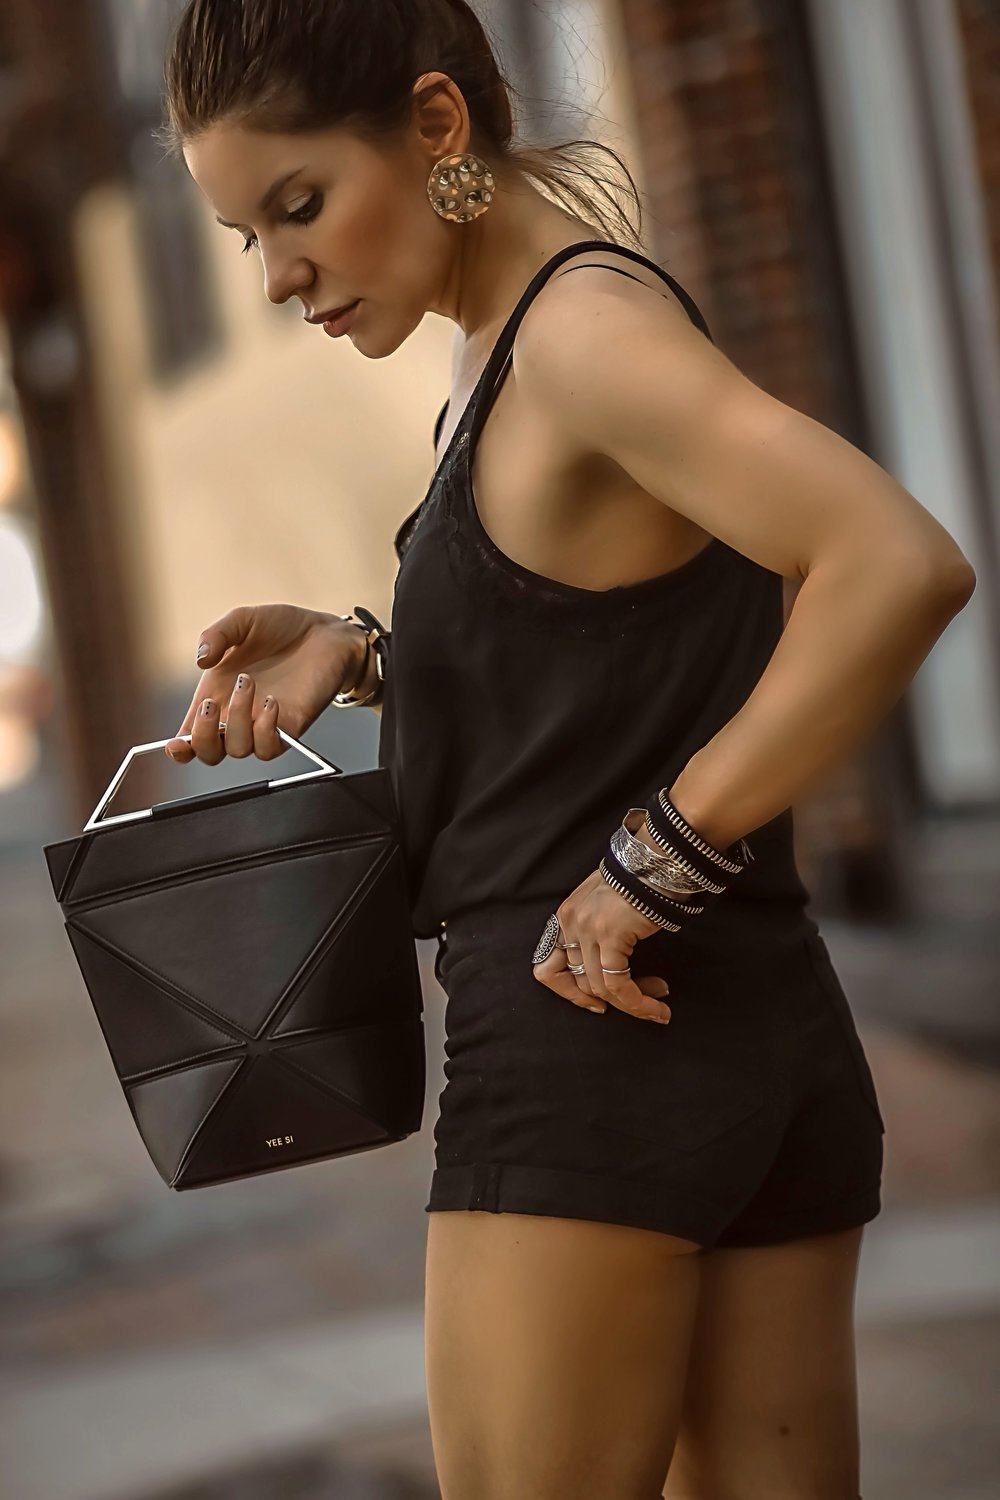 Yee Si Foldable Bag Close Up Black Outfit Profile Isabel Alexander